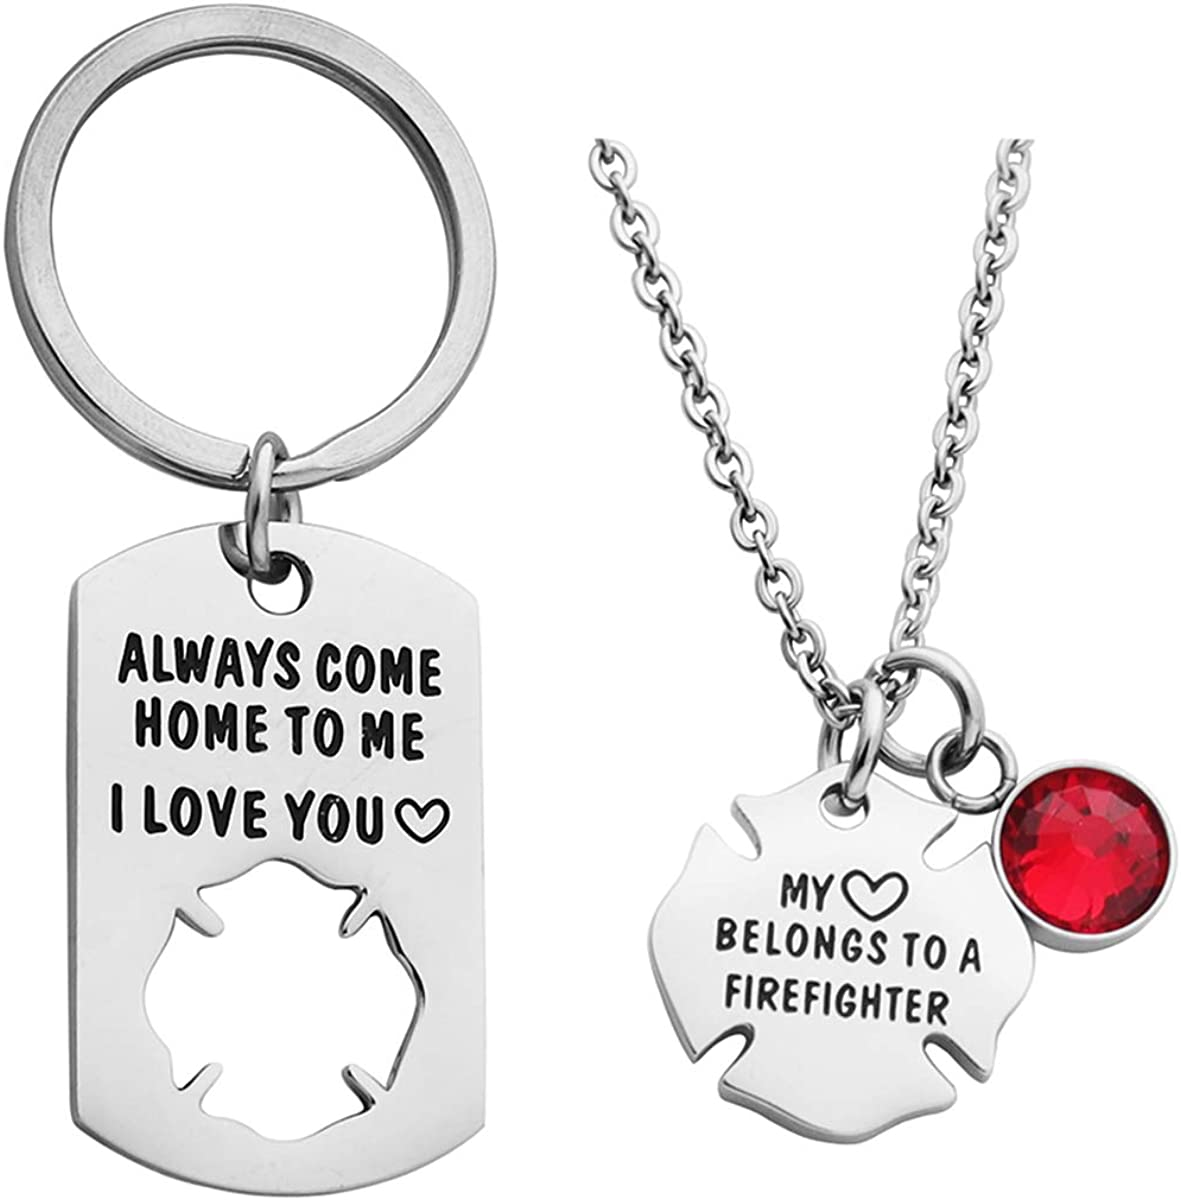 Ankiyabe Firefighter Gift Always Come Home to Me Keychain My Heart Belongs to a Firefighter Badge Necklace Fireman Husband Gift from Wife